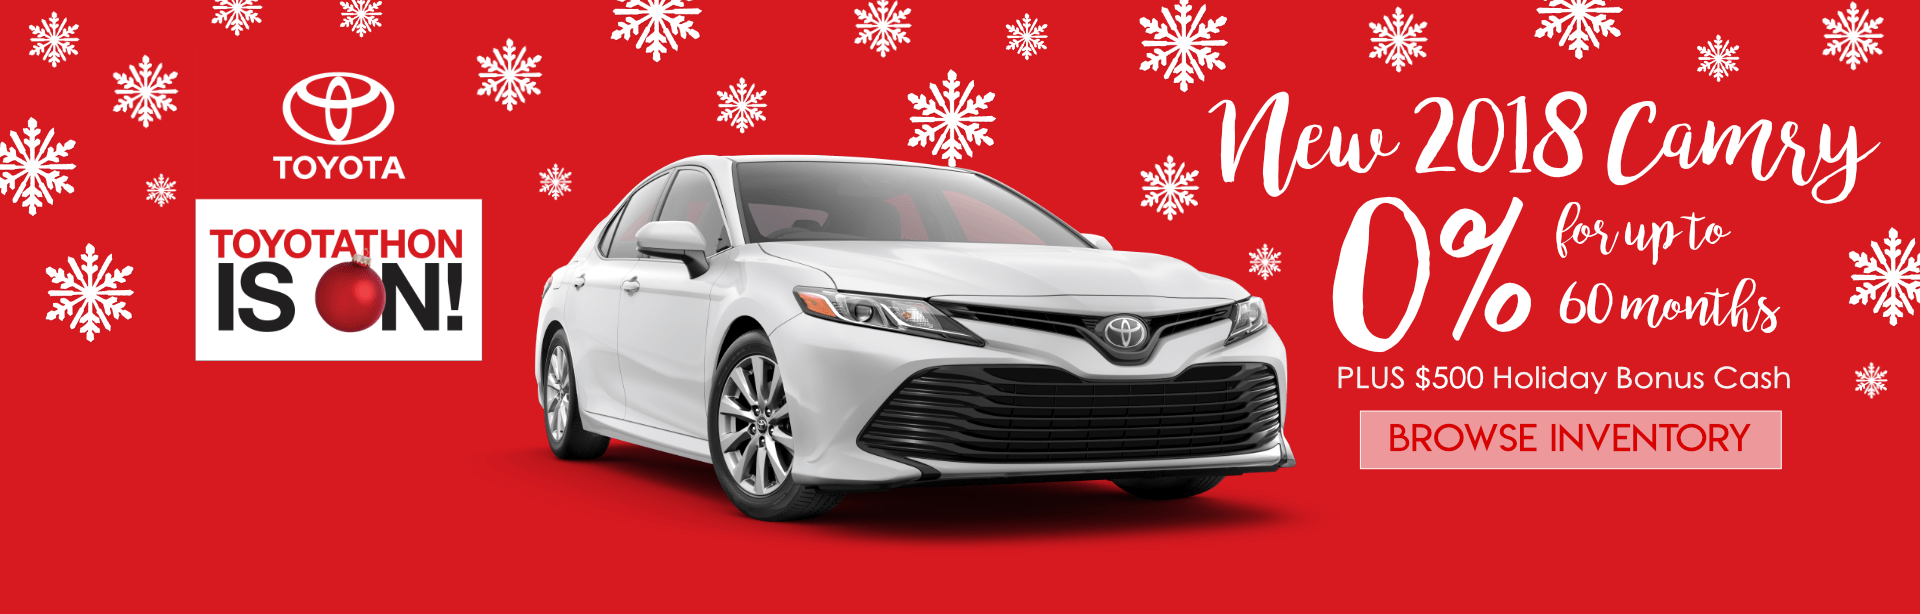 2018 Camry Offer